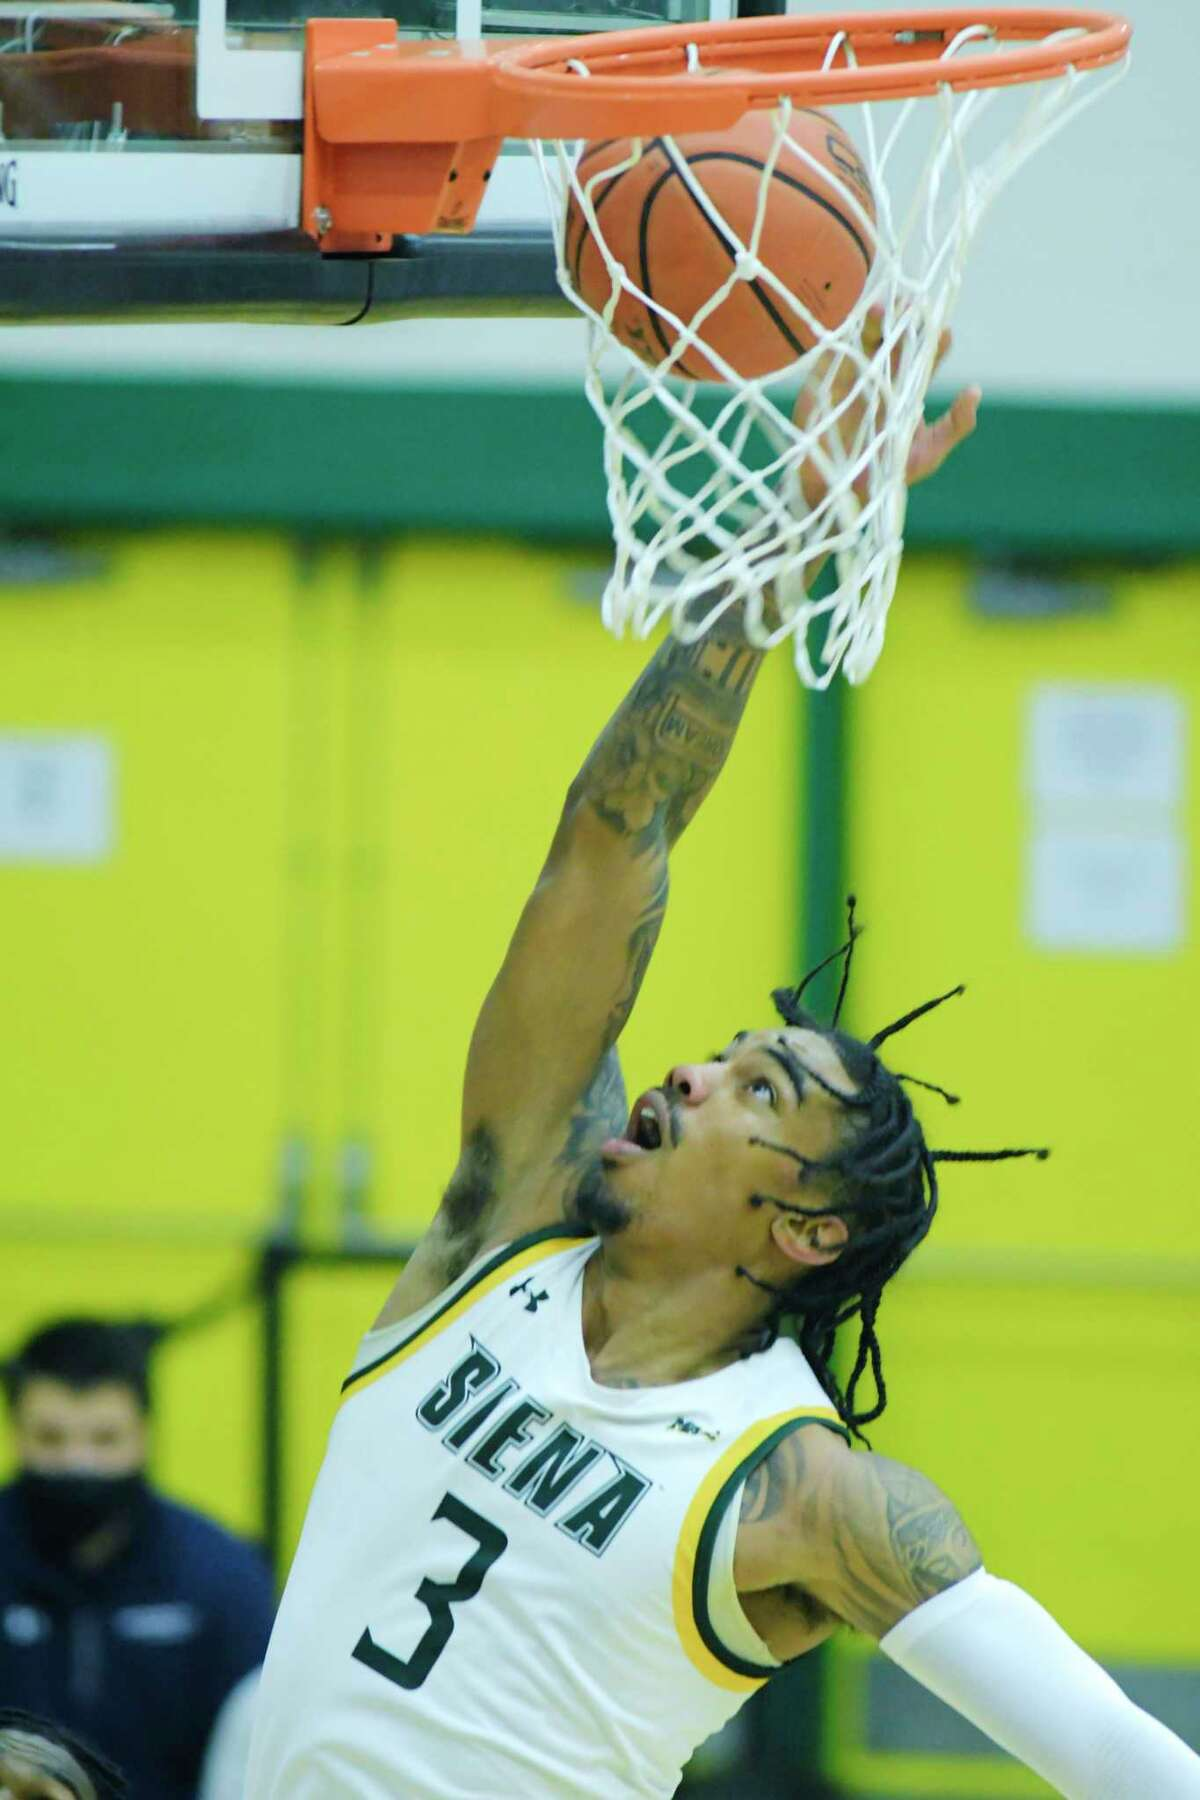 Manny Camper of Siena scores during their game against Monmouth at the Alumni Recreation Center on the campus of Siena College, on Sunday, Jan. 3, 2021, in Loudonville, N.Y. (Paul Buckowski/Times Union)